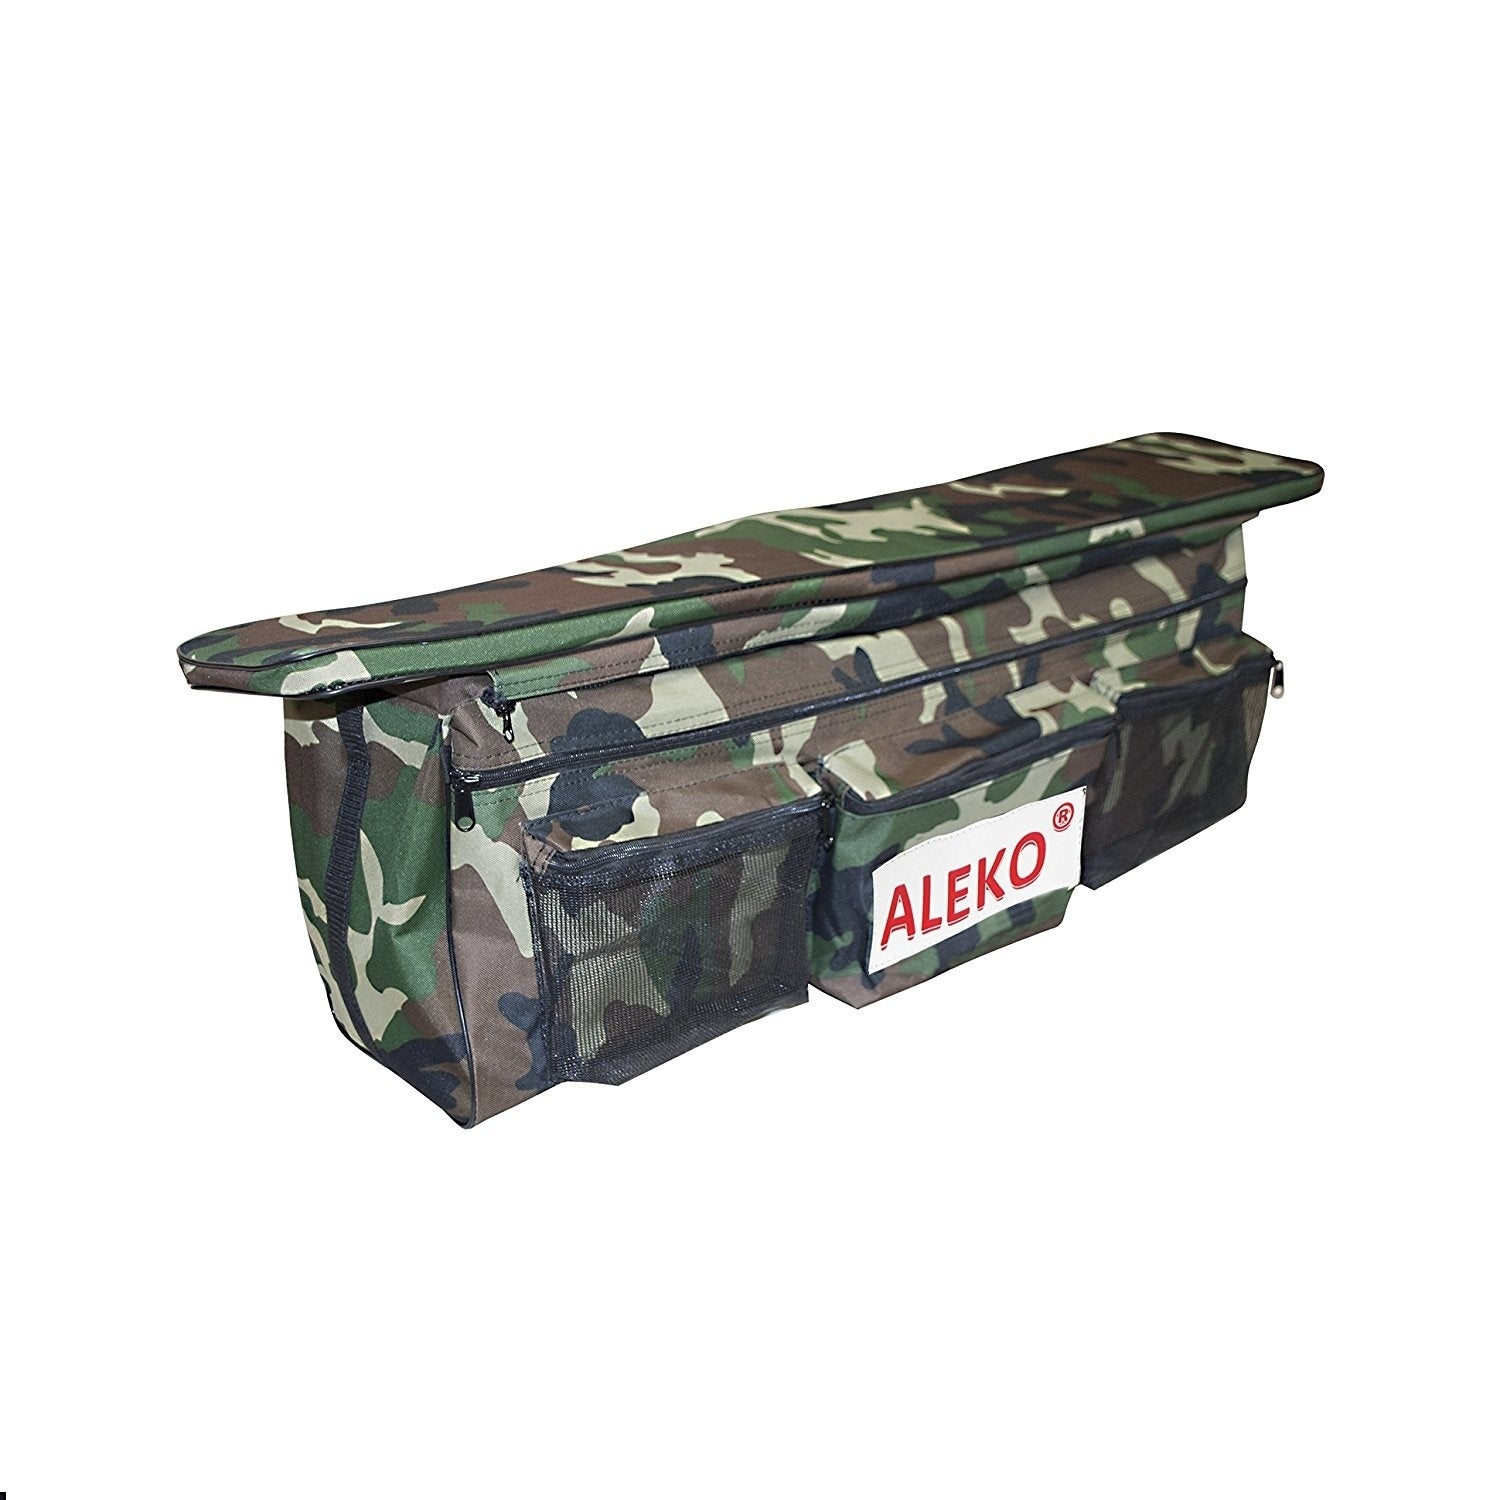 ALEKO Seat Cushion Under Seat Bag 38″X9″ with Pockets For Boat CAMO